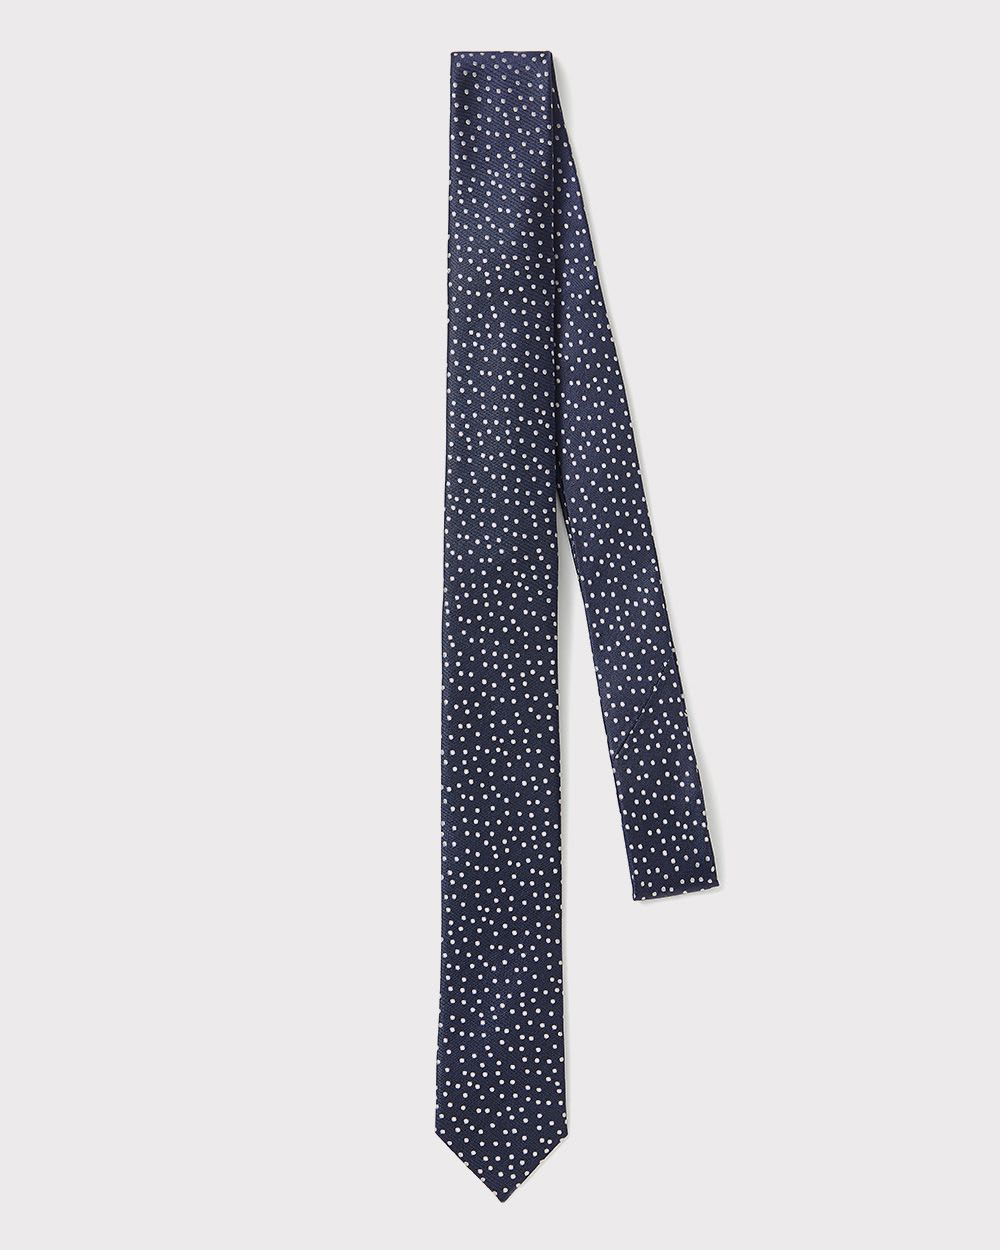 701a32551c06 Skinny dotted Tie   RW&CO.